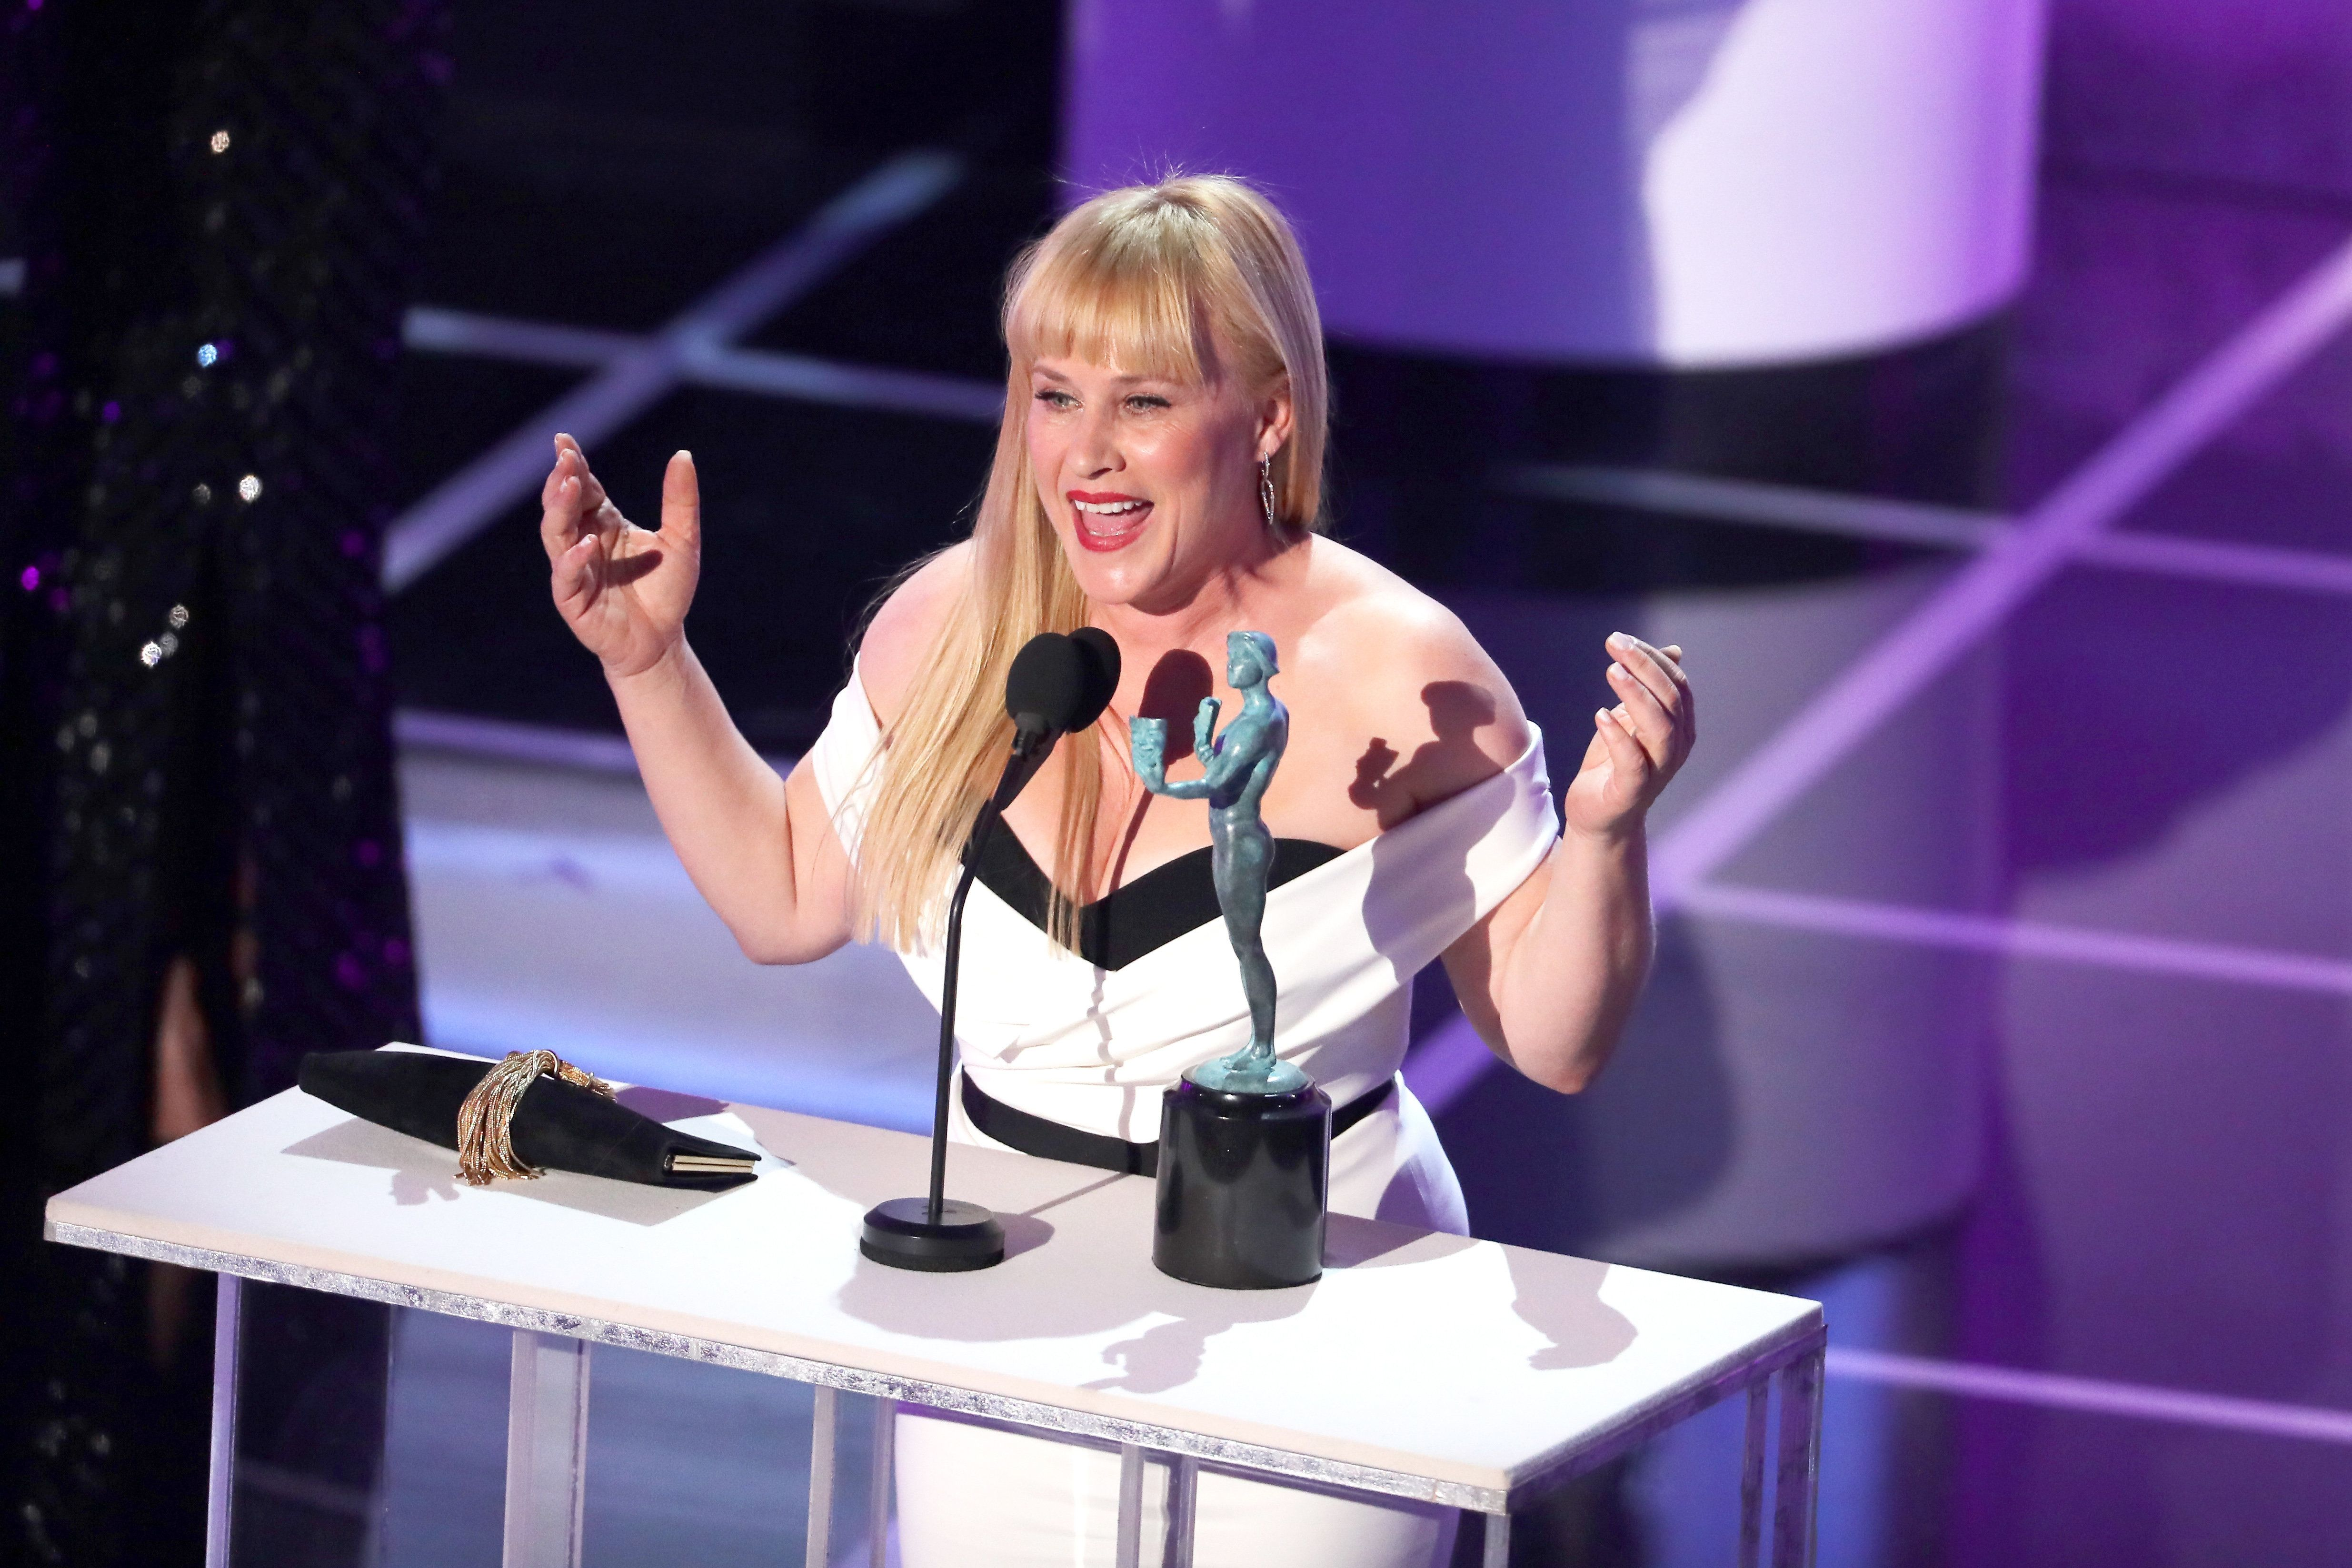 LOS ANGELES, CA - JANUARY 27:  Patricia Arquette onstage during the 25th Annual Screen Actors Guild Awards at The Shrine Auditorium on January 27, 2019 in Los Angeles, California. 480468  (Photo by Richard Heathcote/Getty Images for Turner)